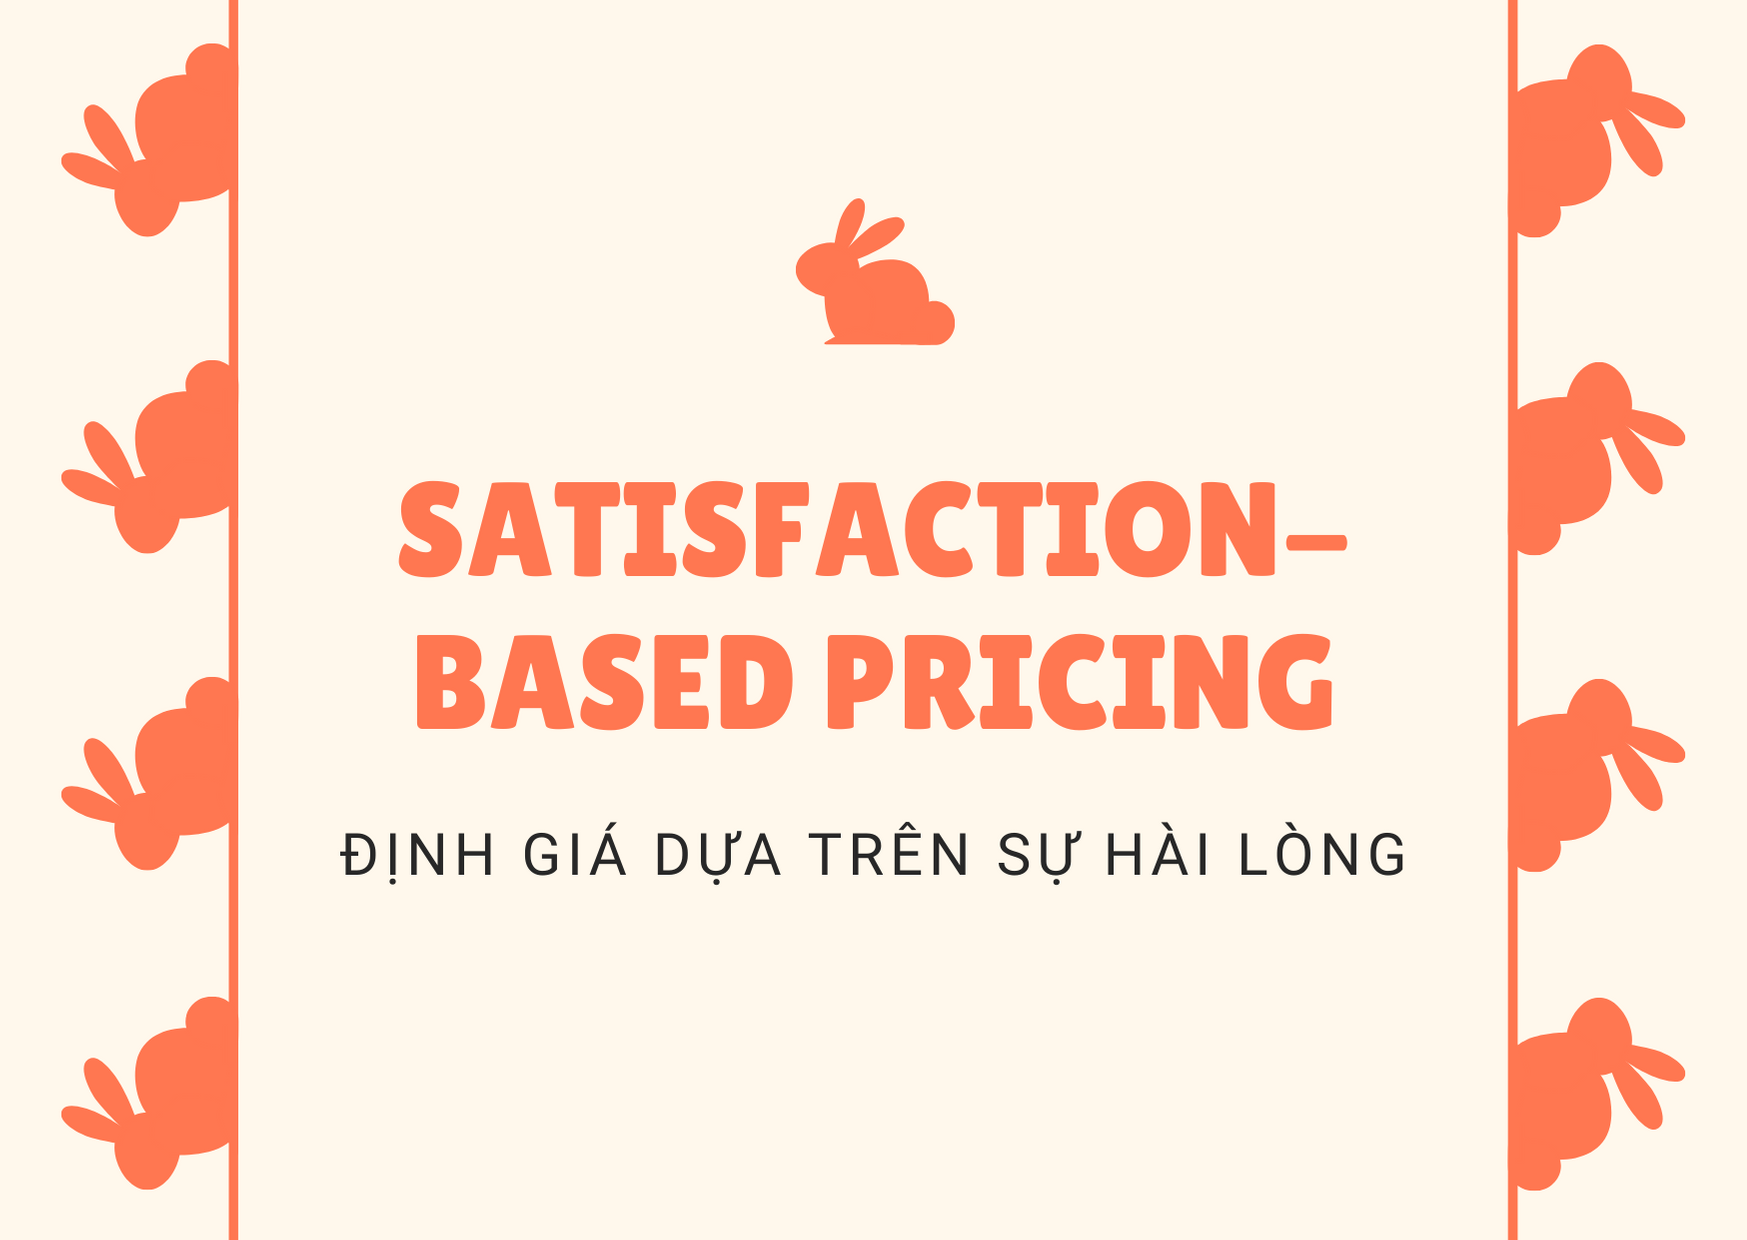 Satisfaction-Based Pricing